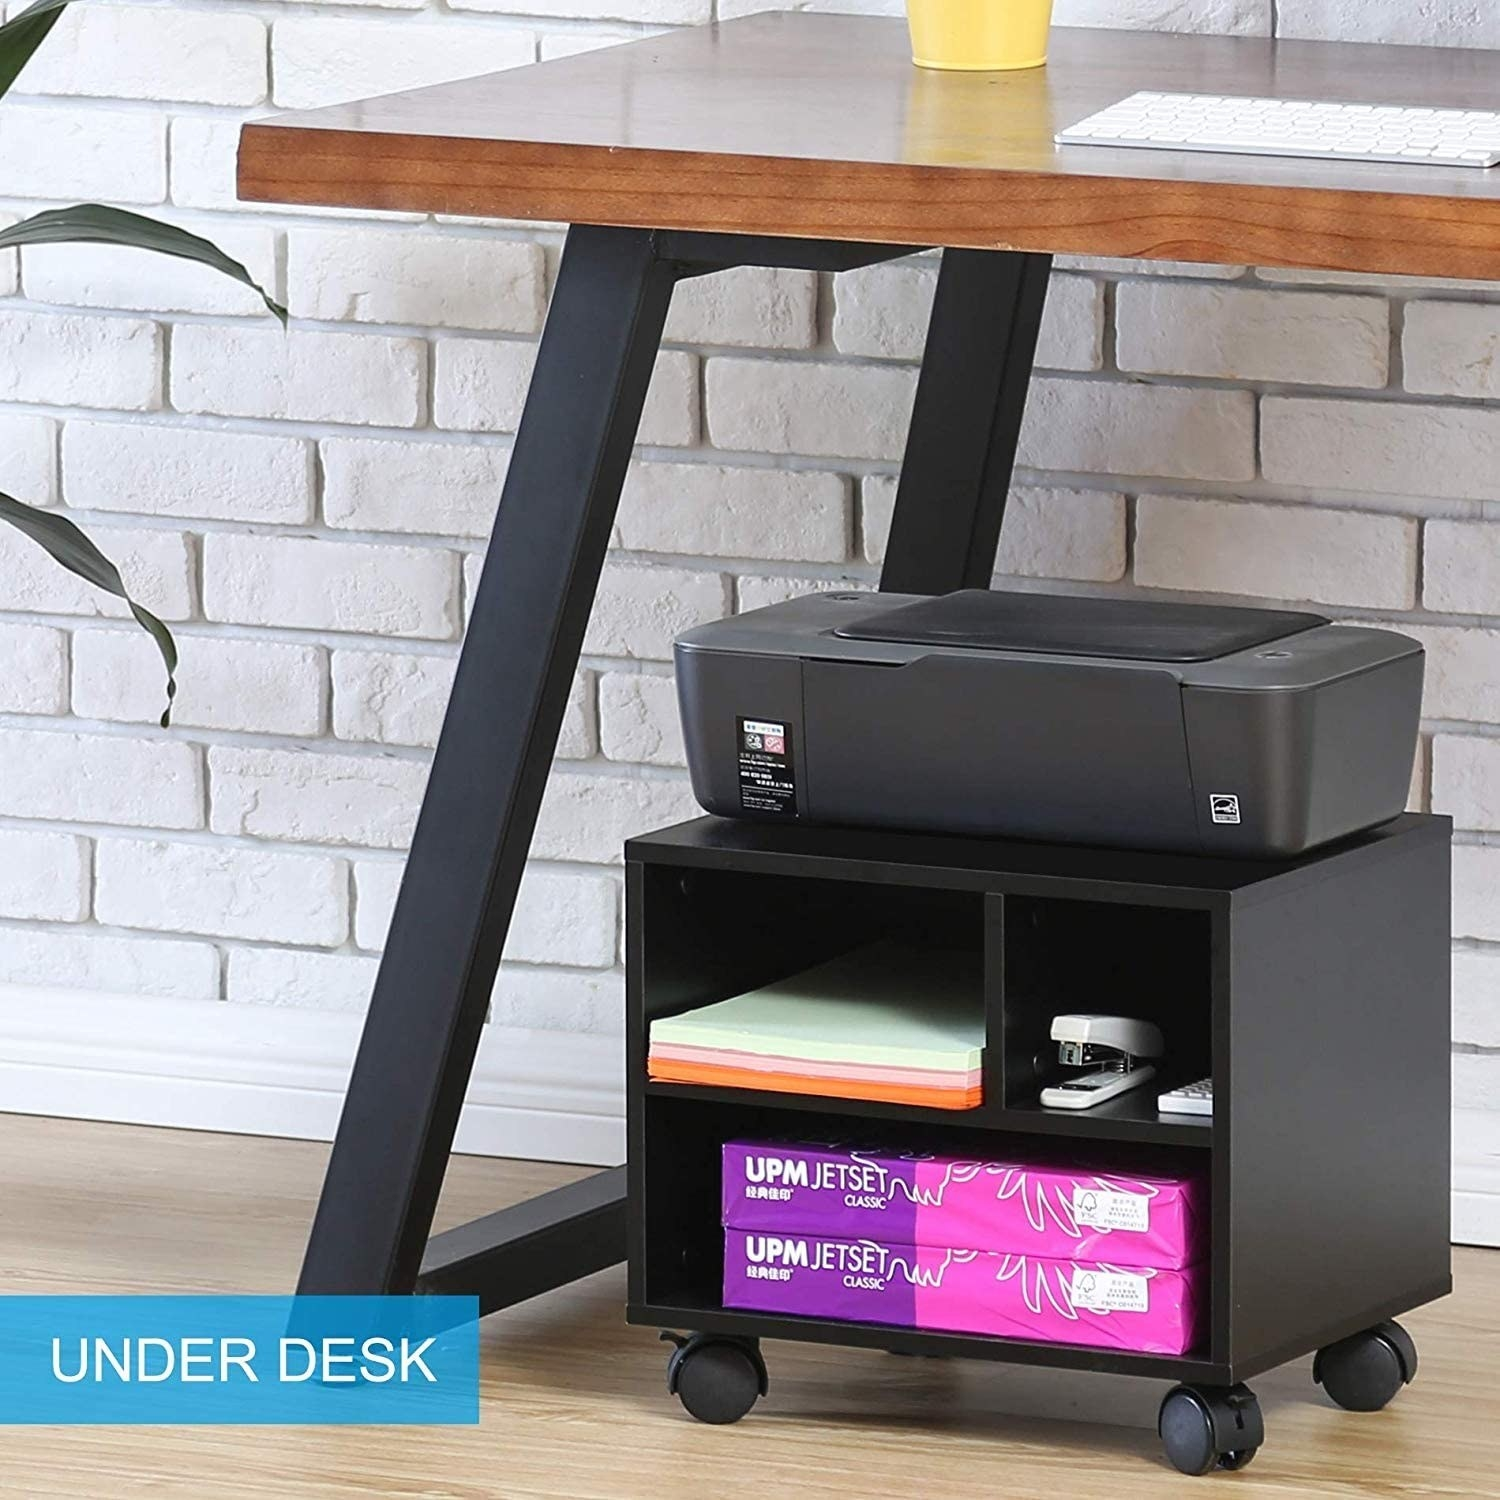 A printer sitting on a small wooden shelf on wheels The shelf has three sections filled with office supplies like paper and a stapler